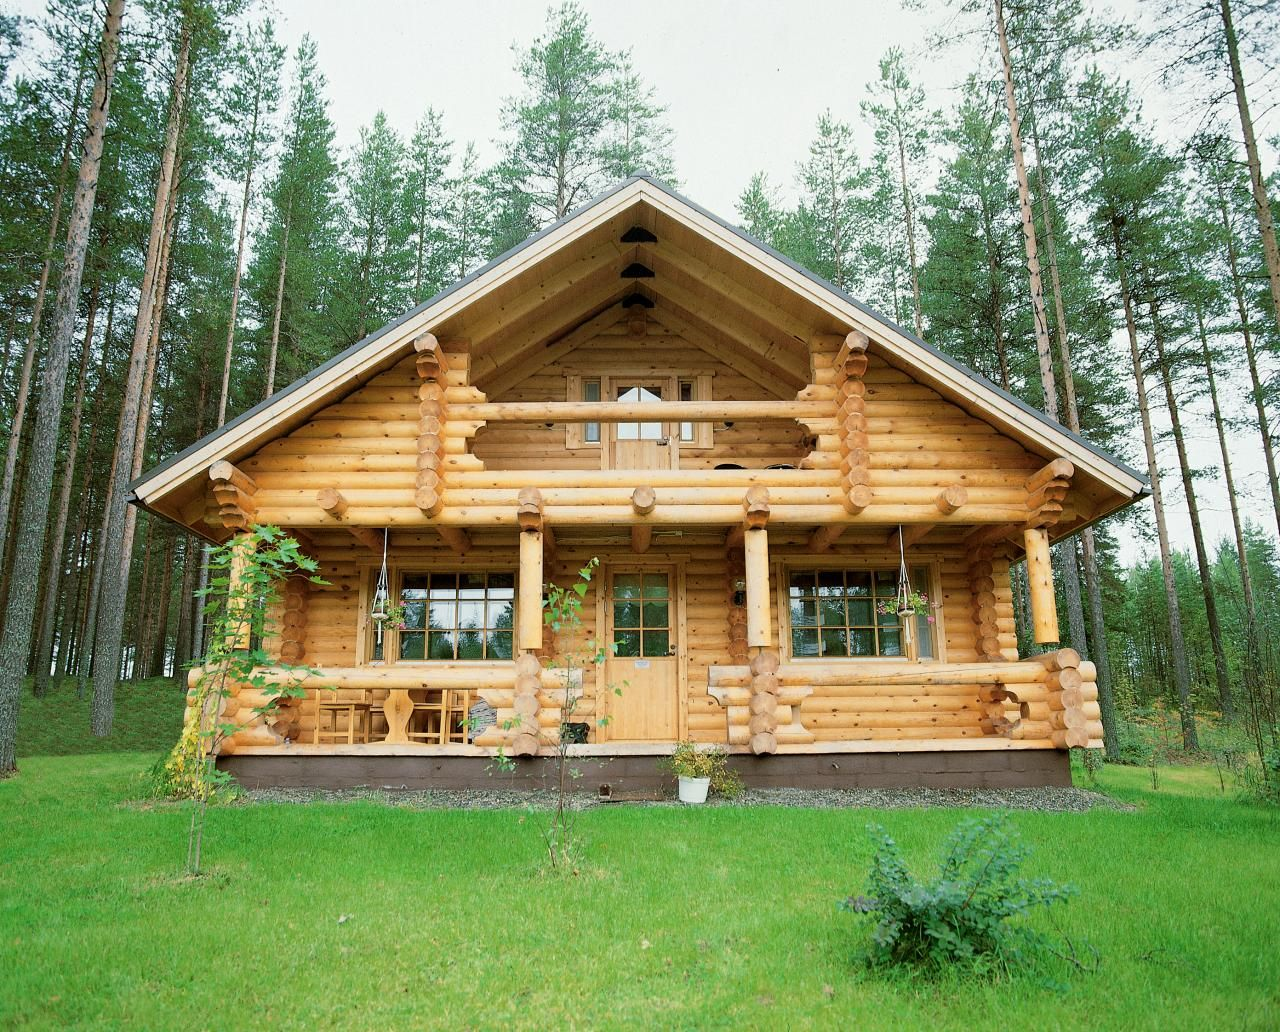 The Finest Timber Houses, Log Houses And Log Cabins From Finland. The Very  Best For Self Build Or Contracted Build.